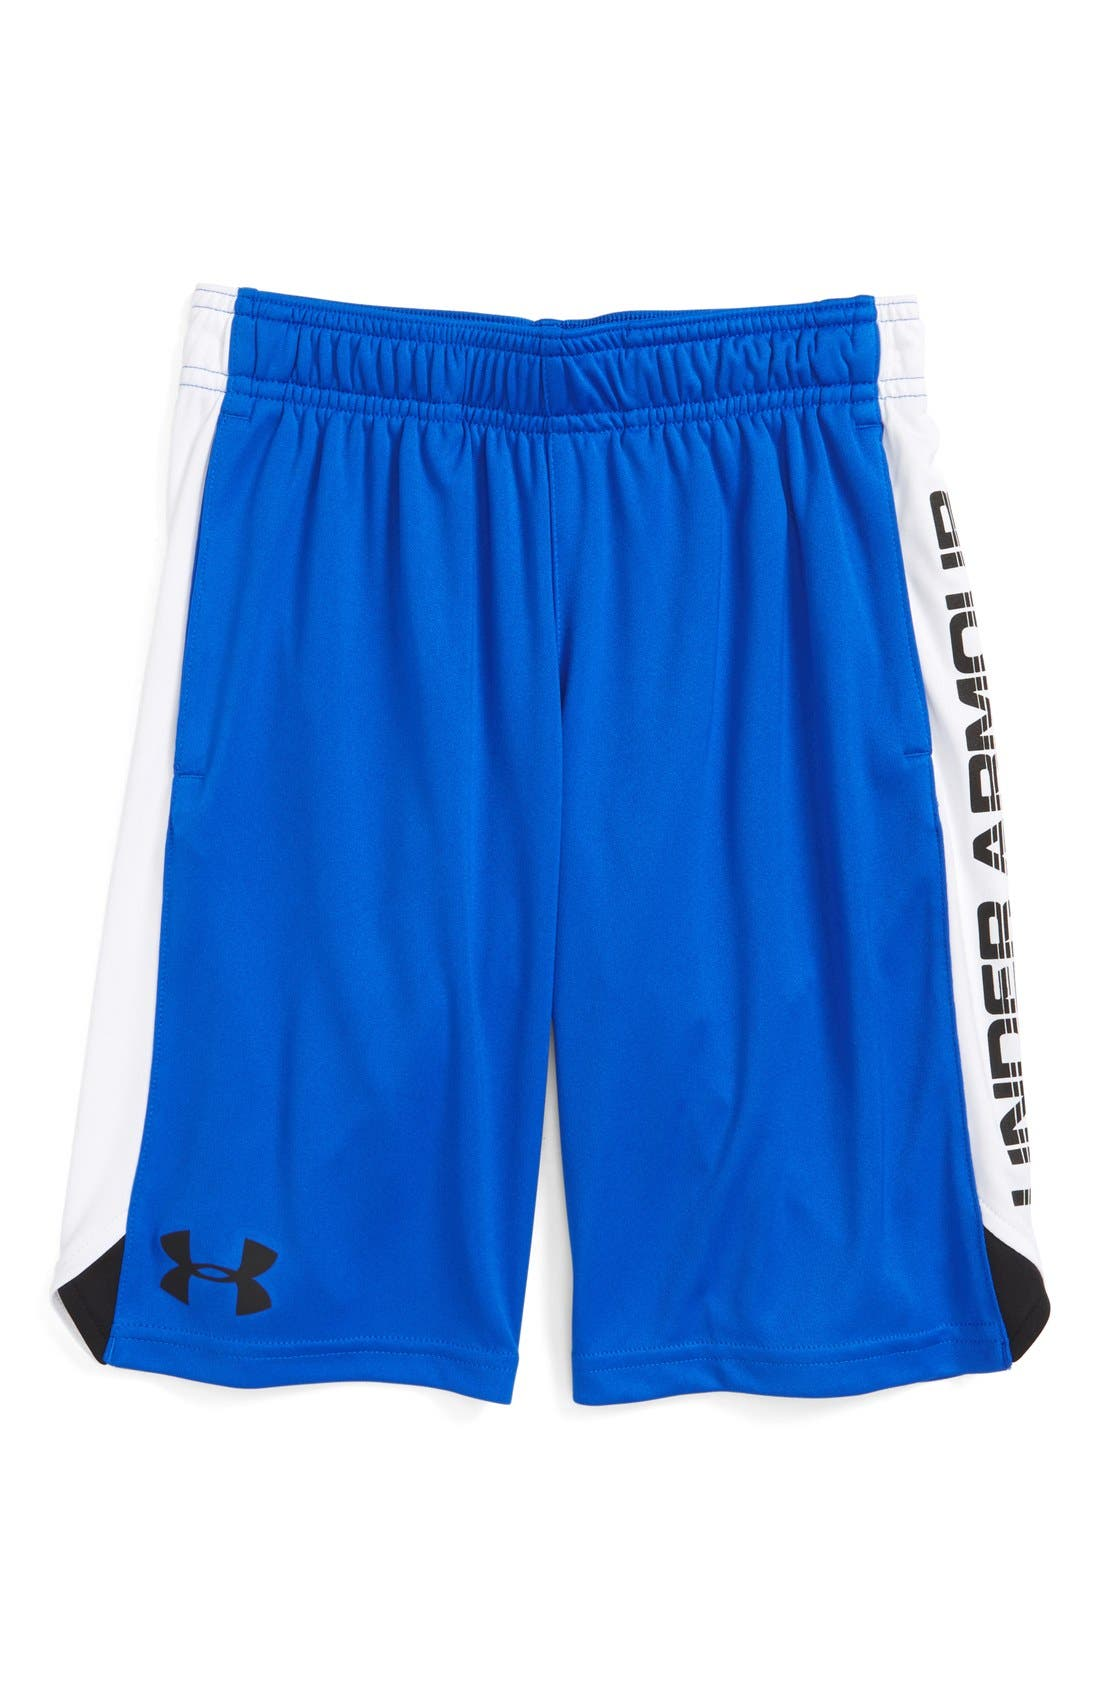 Main Image - Under Armour 'Eliminator' HeatGear® Shorts (Big Boys)